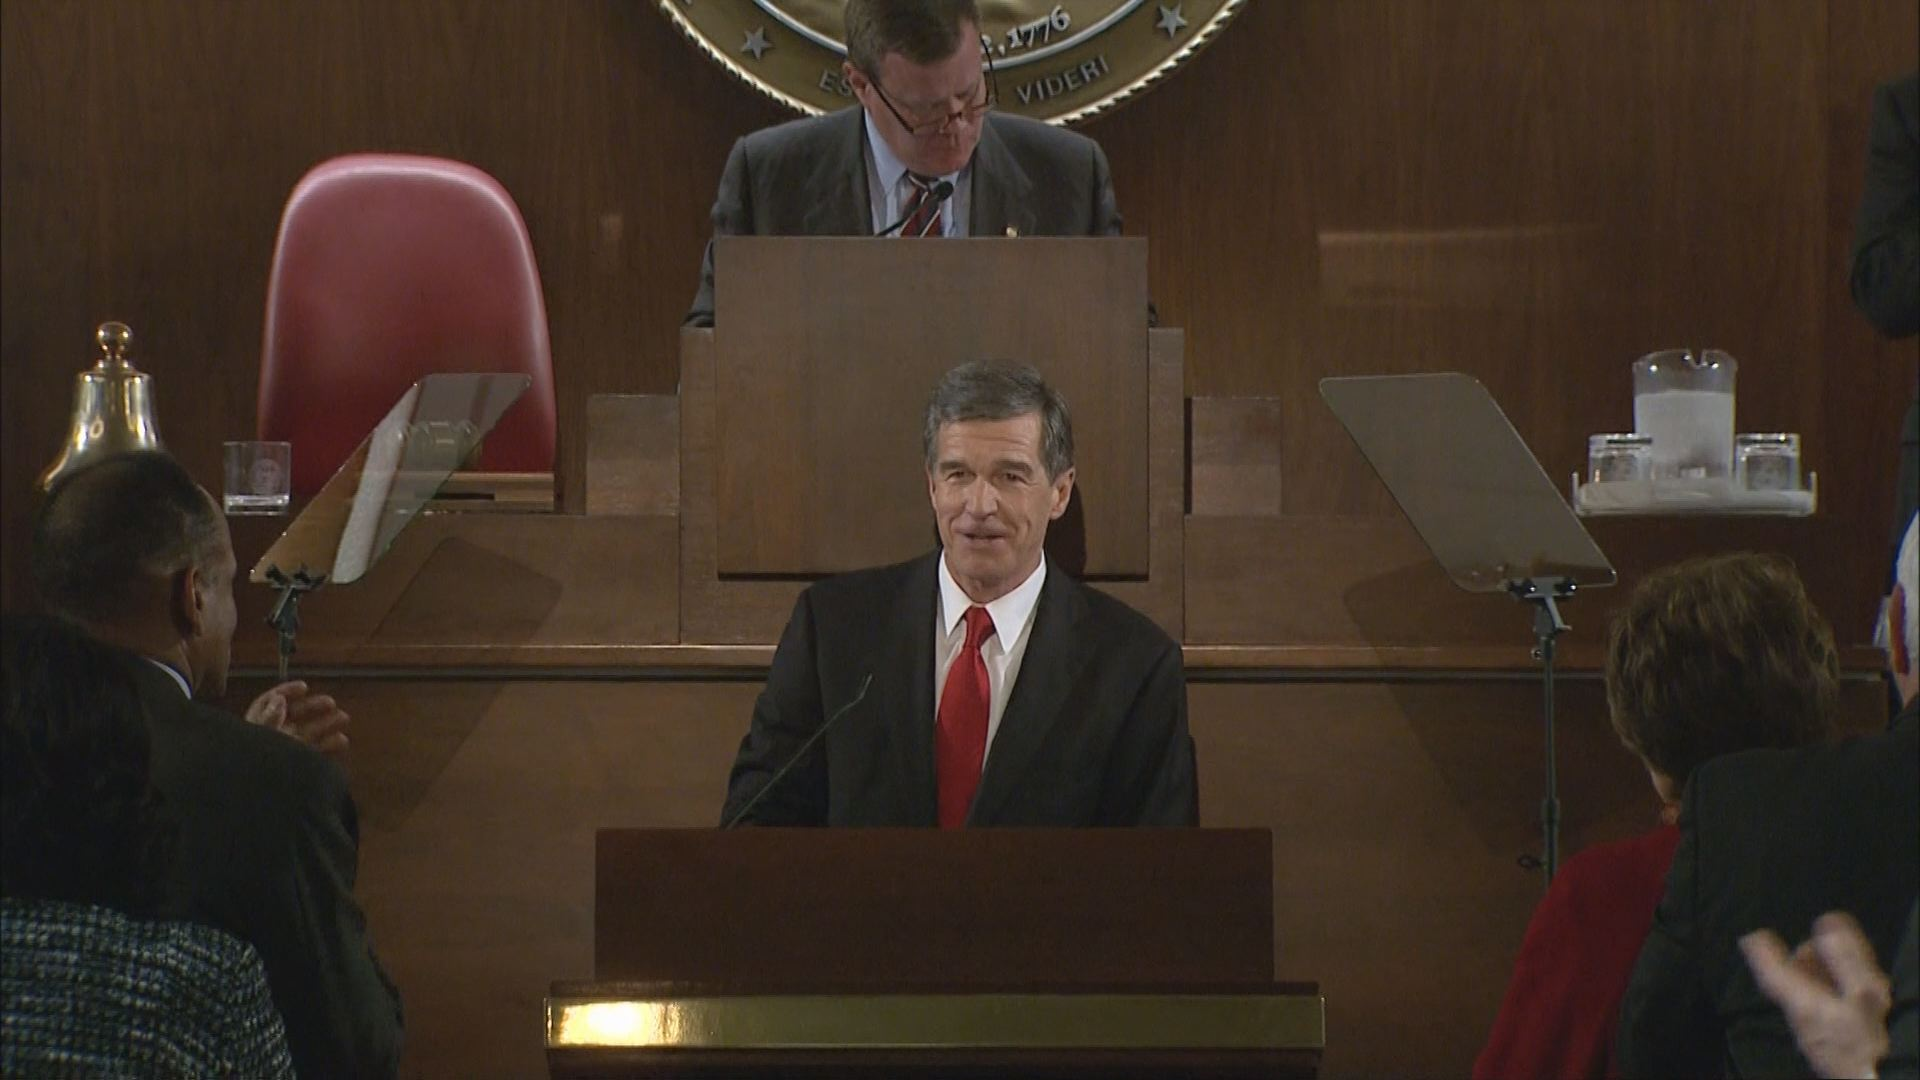 Cooper's first legislative address follows conflict with GOP